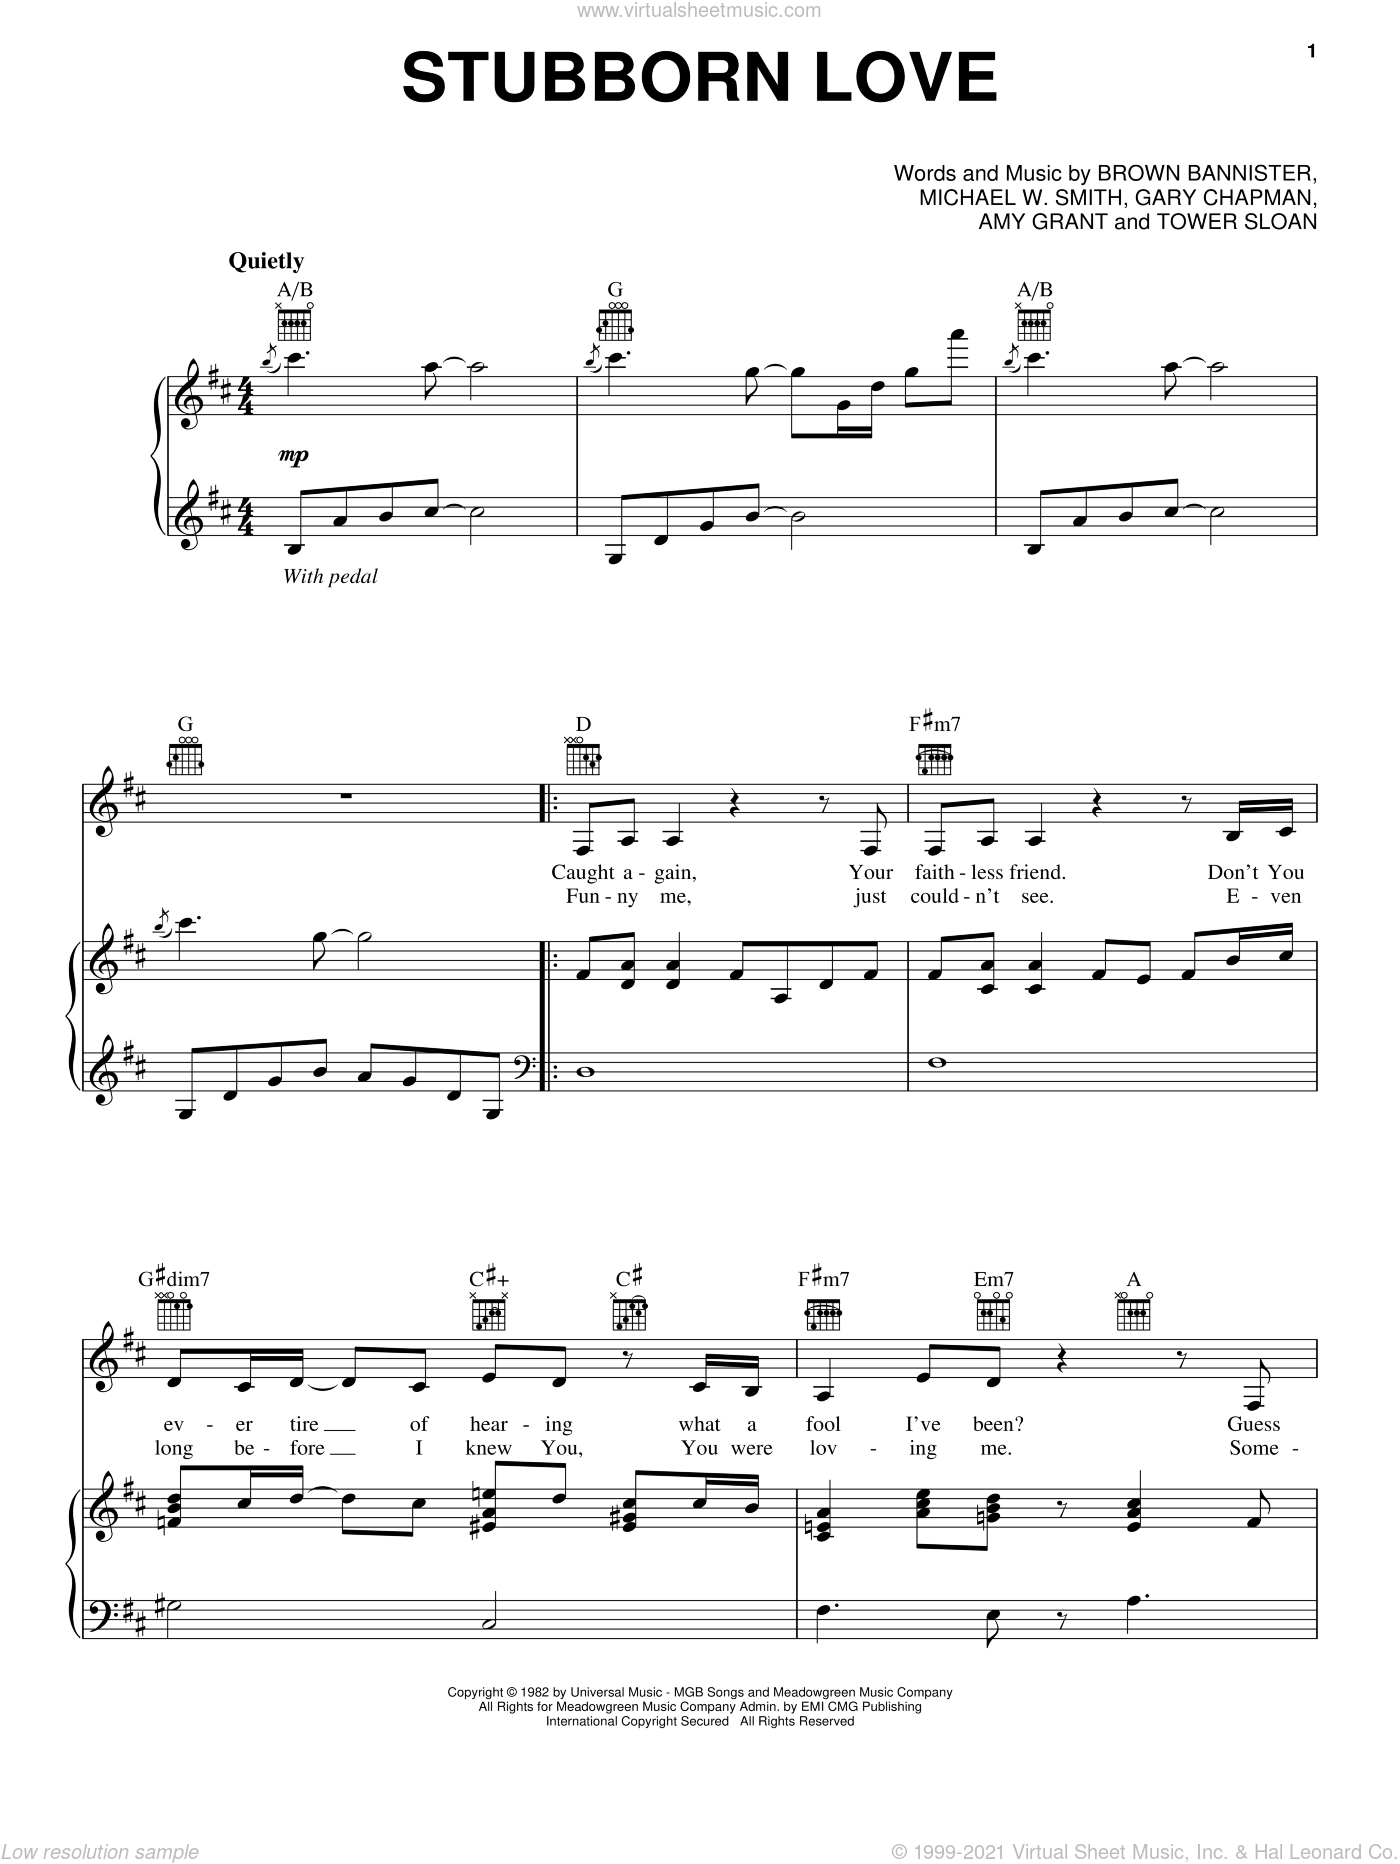 Stubborn Love sheet music for voice, piano or guitar by Michael W. Smith and Amy Grant. Score Image Preview.